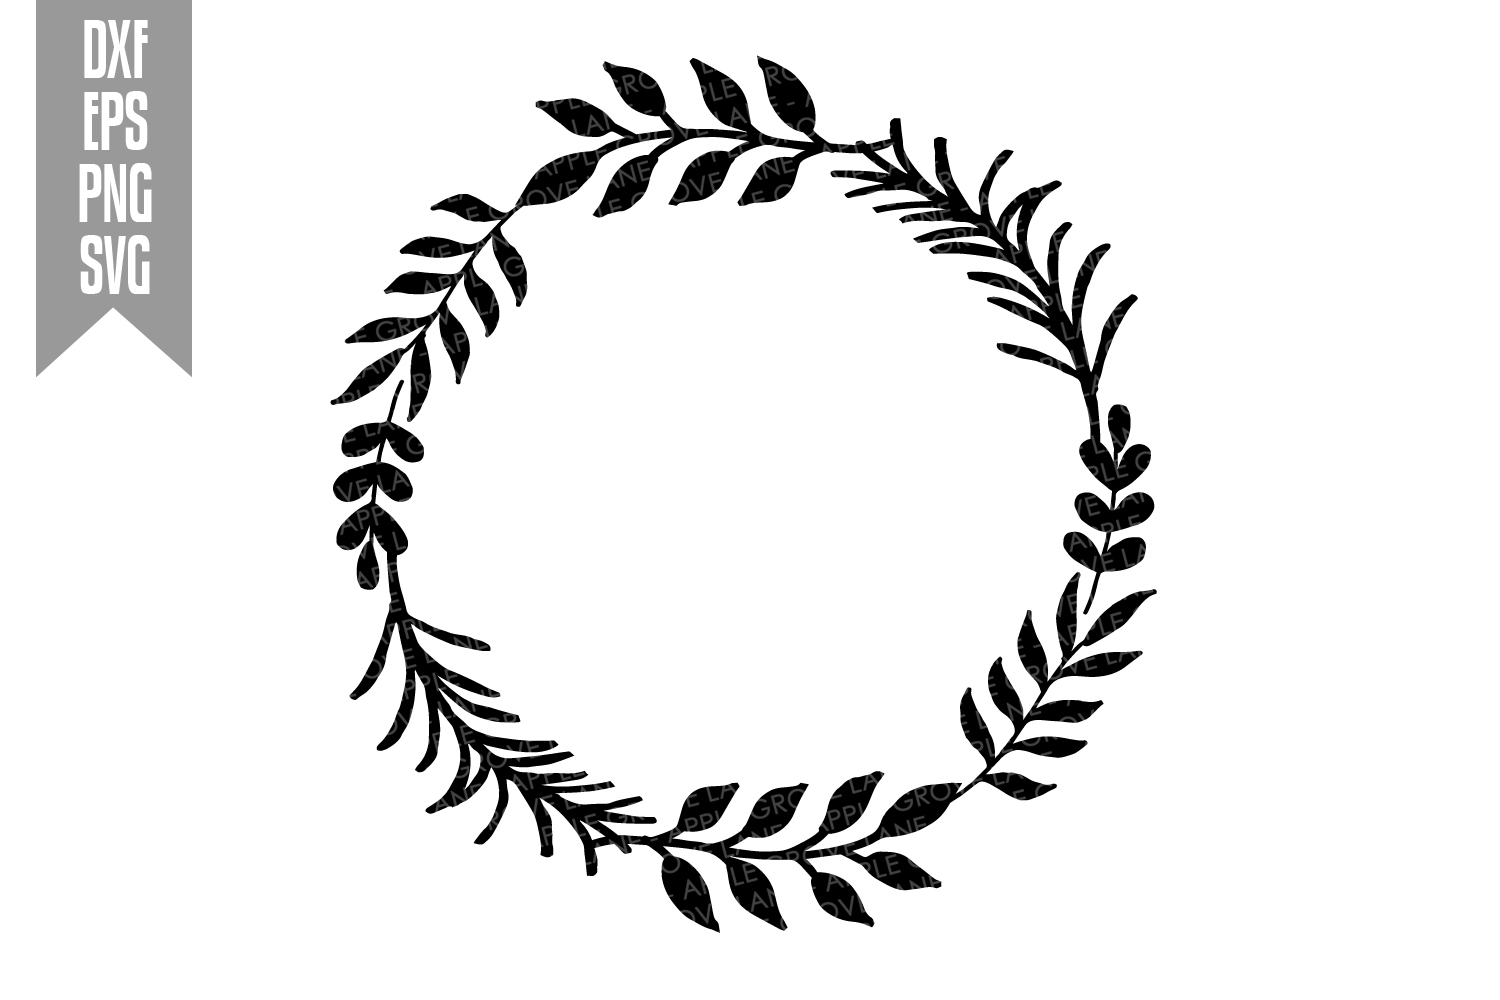 Wreath Svg Bundle - 6 designs included - Svg Cut Files example image 13